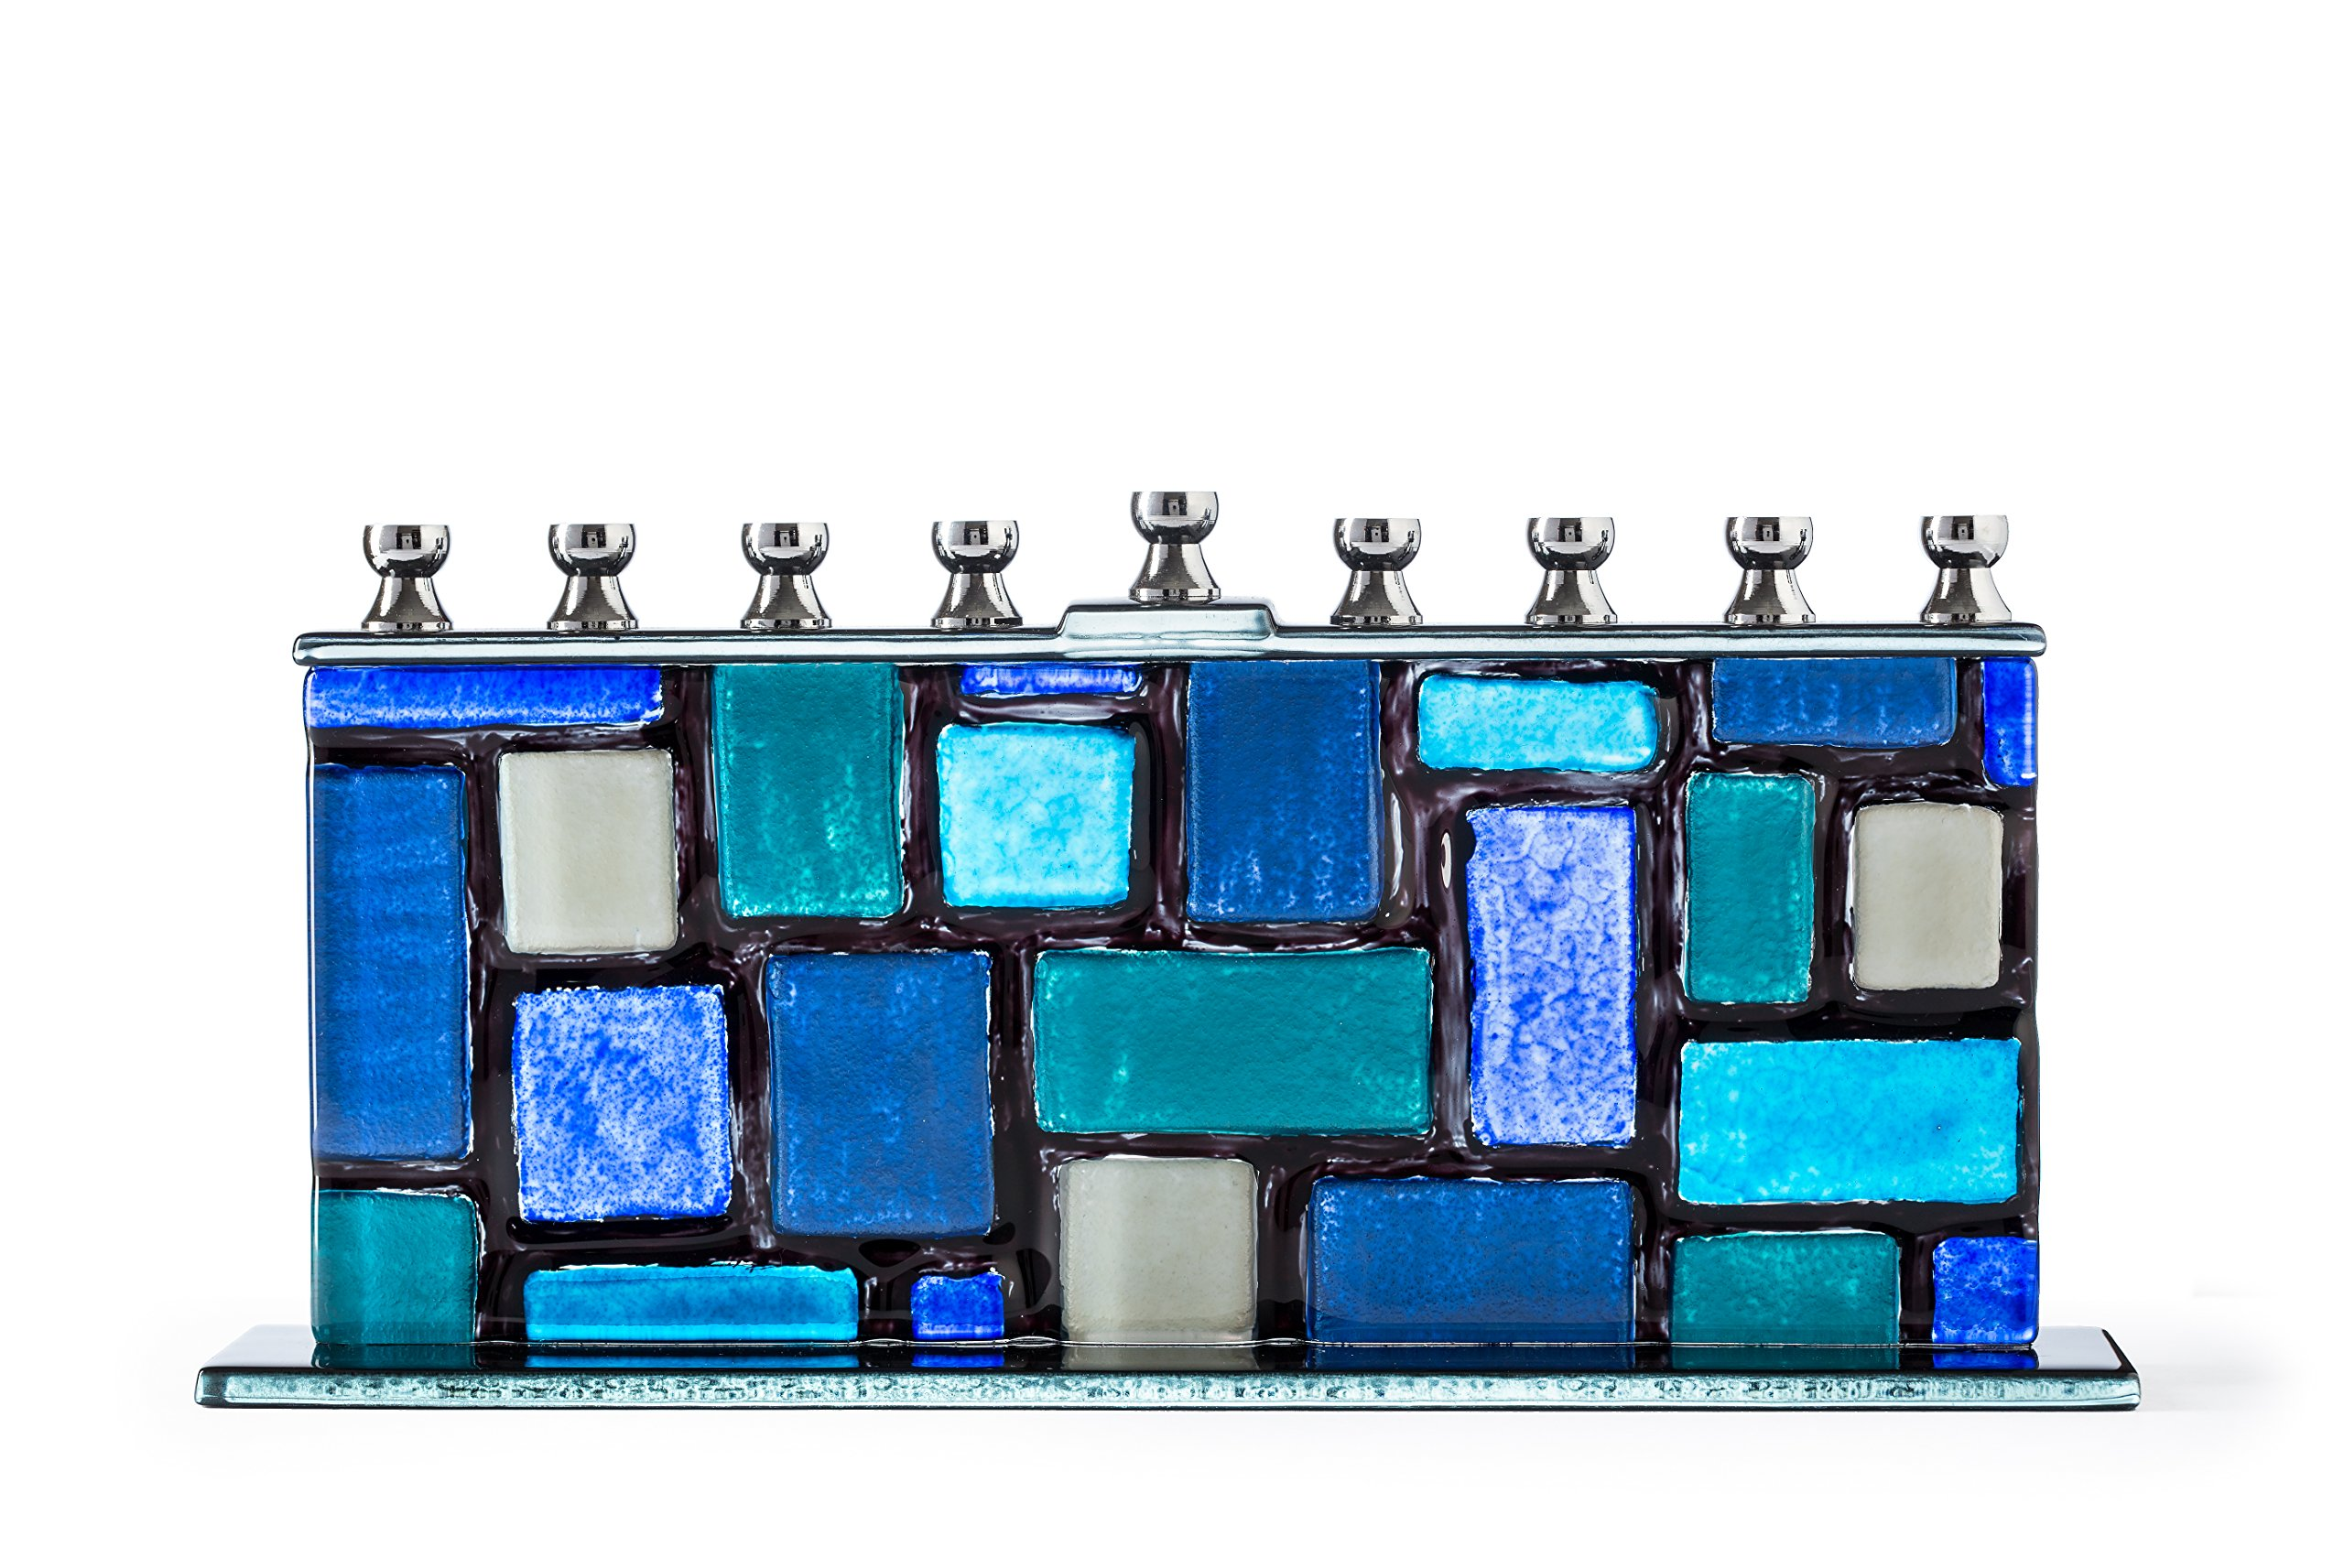 Ner Mitzvah Glass Candle Menorah - Fits All Standard Chanukah Candles - Handcrafted Blue and White Western Wall/Kotel Design Menora by Ner Mitzvah